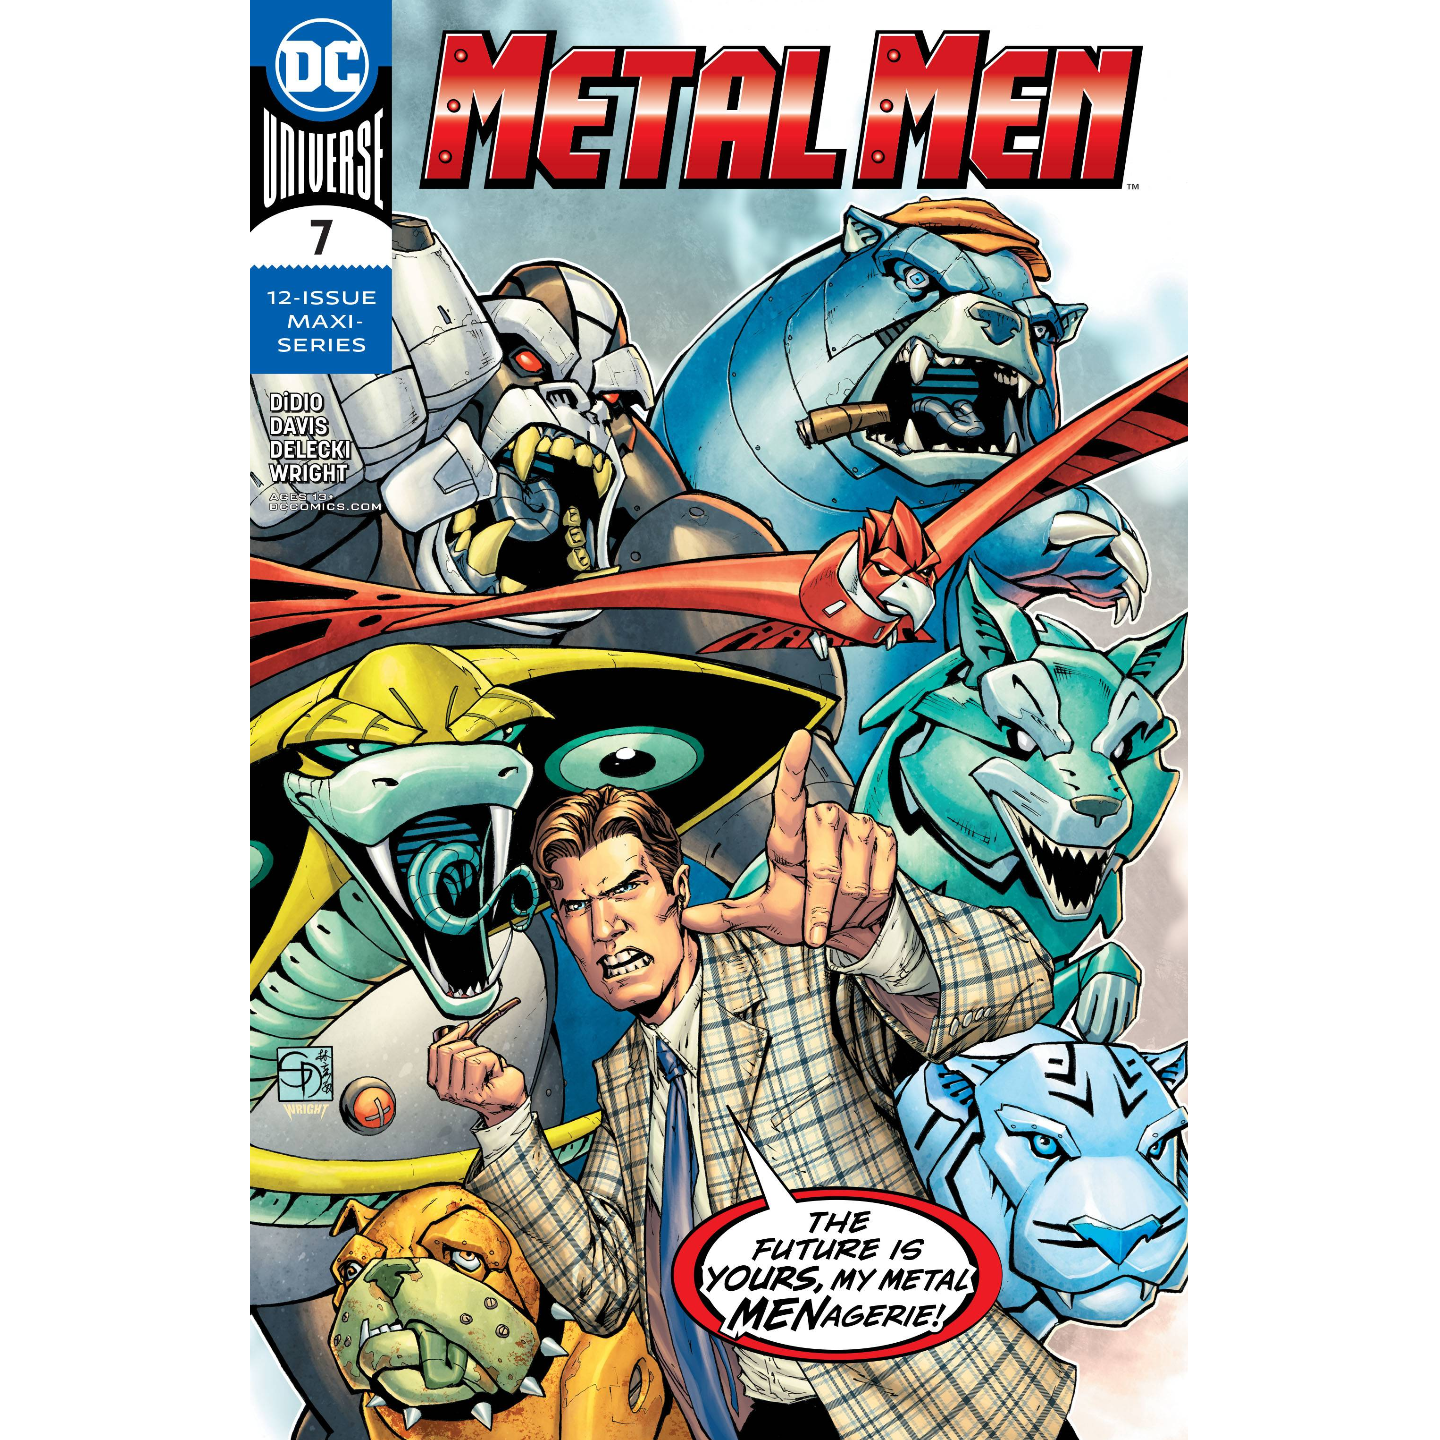 METAL MEN #7 (OF 12)